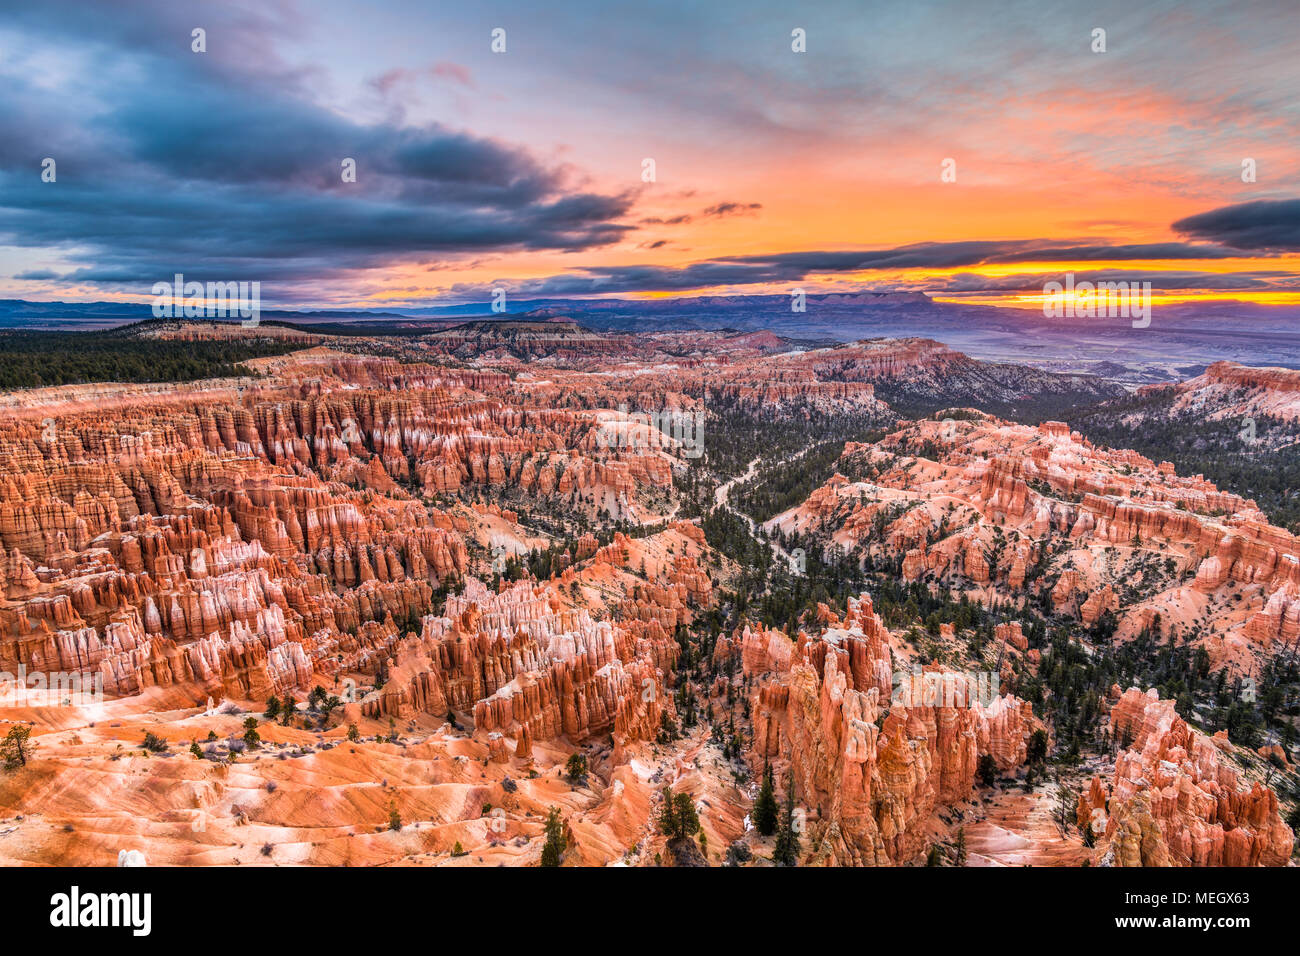 Bryce Canyon National Park, Utah, USA à l'aube. Photo Stock